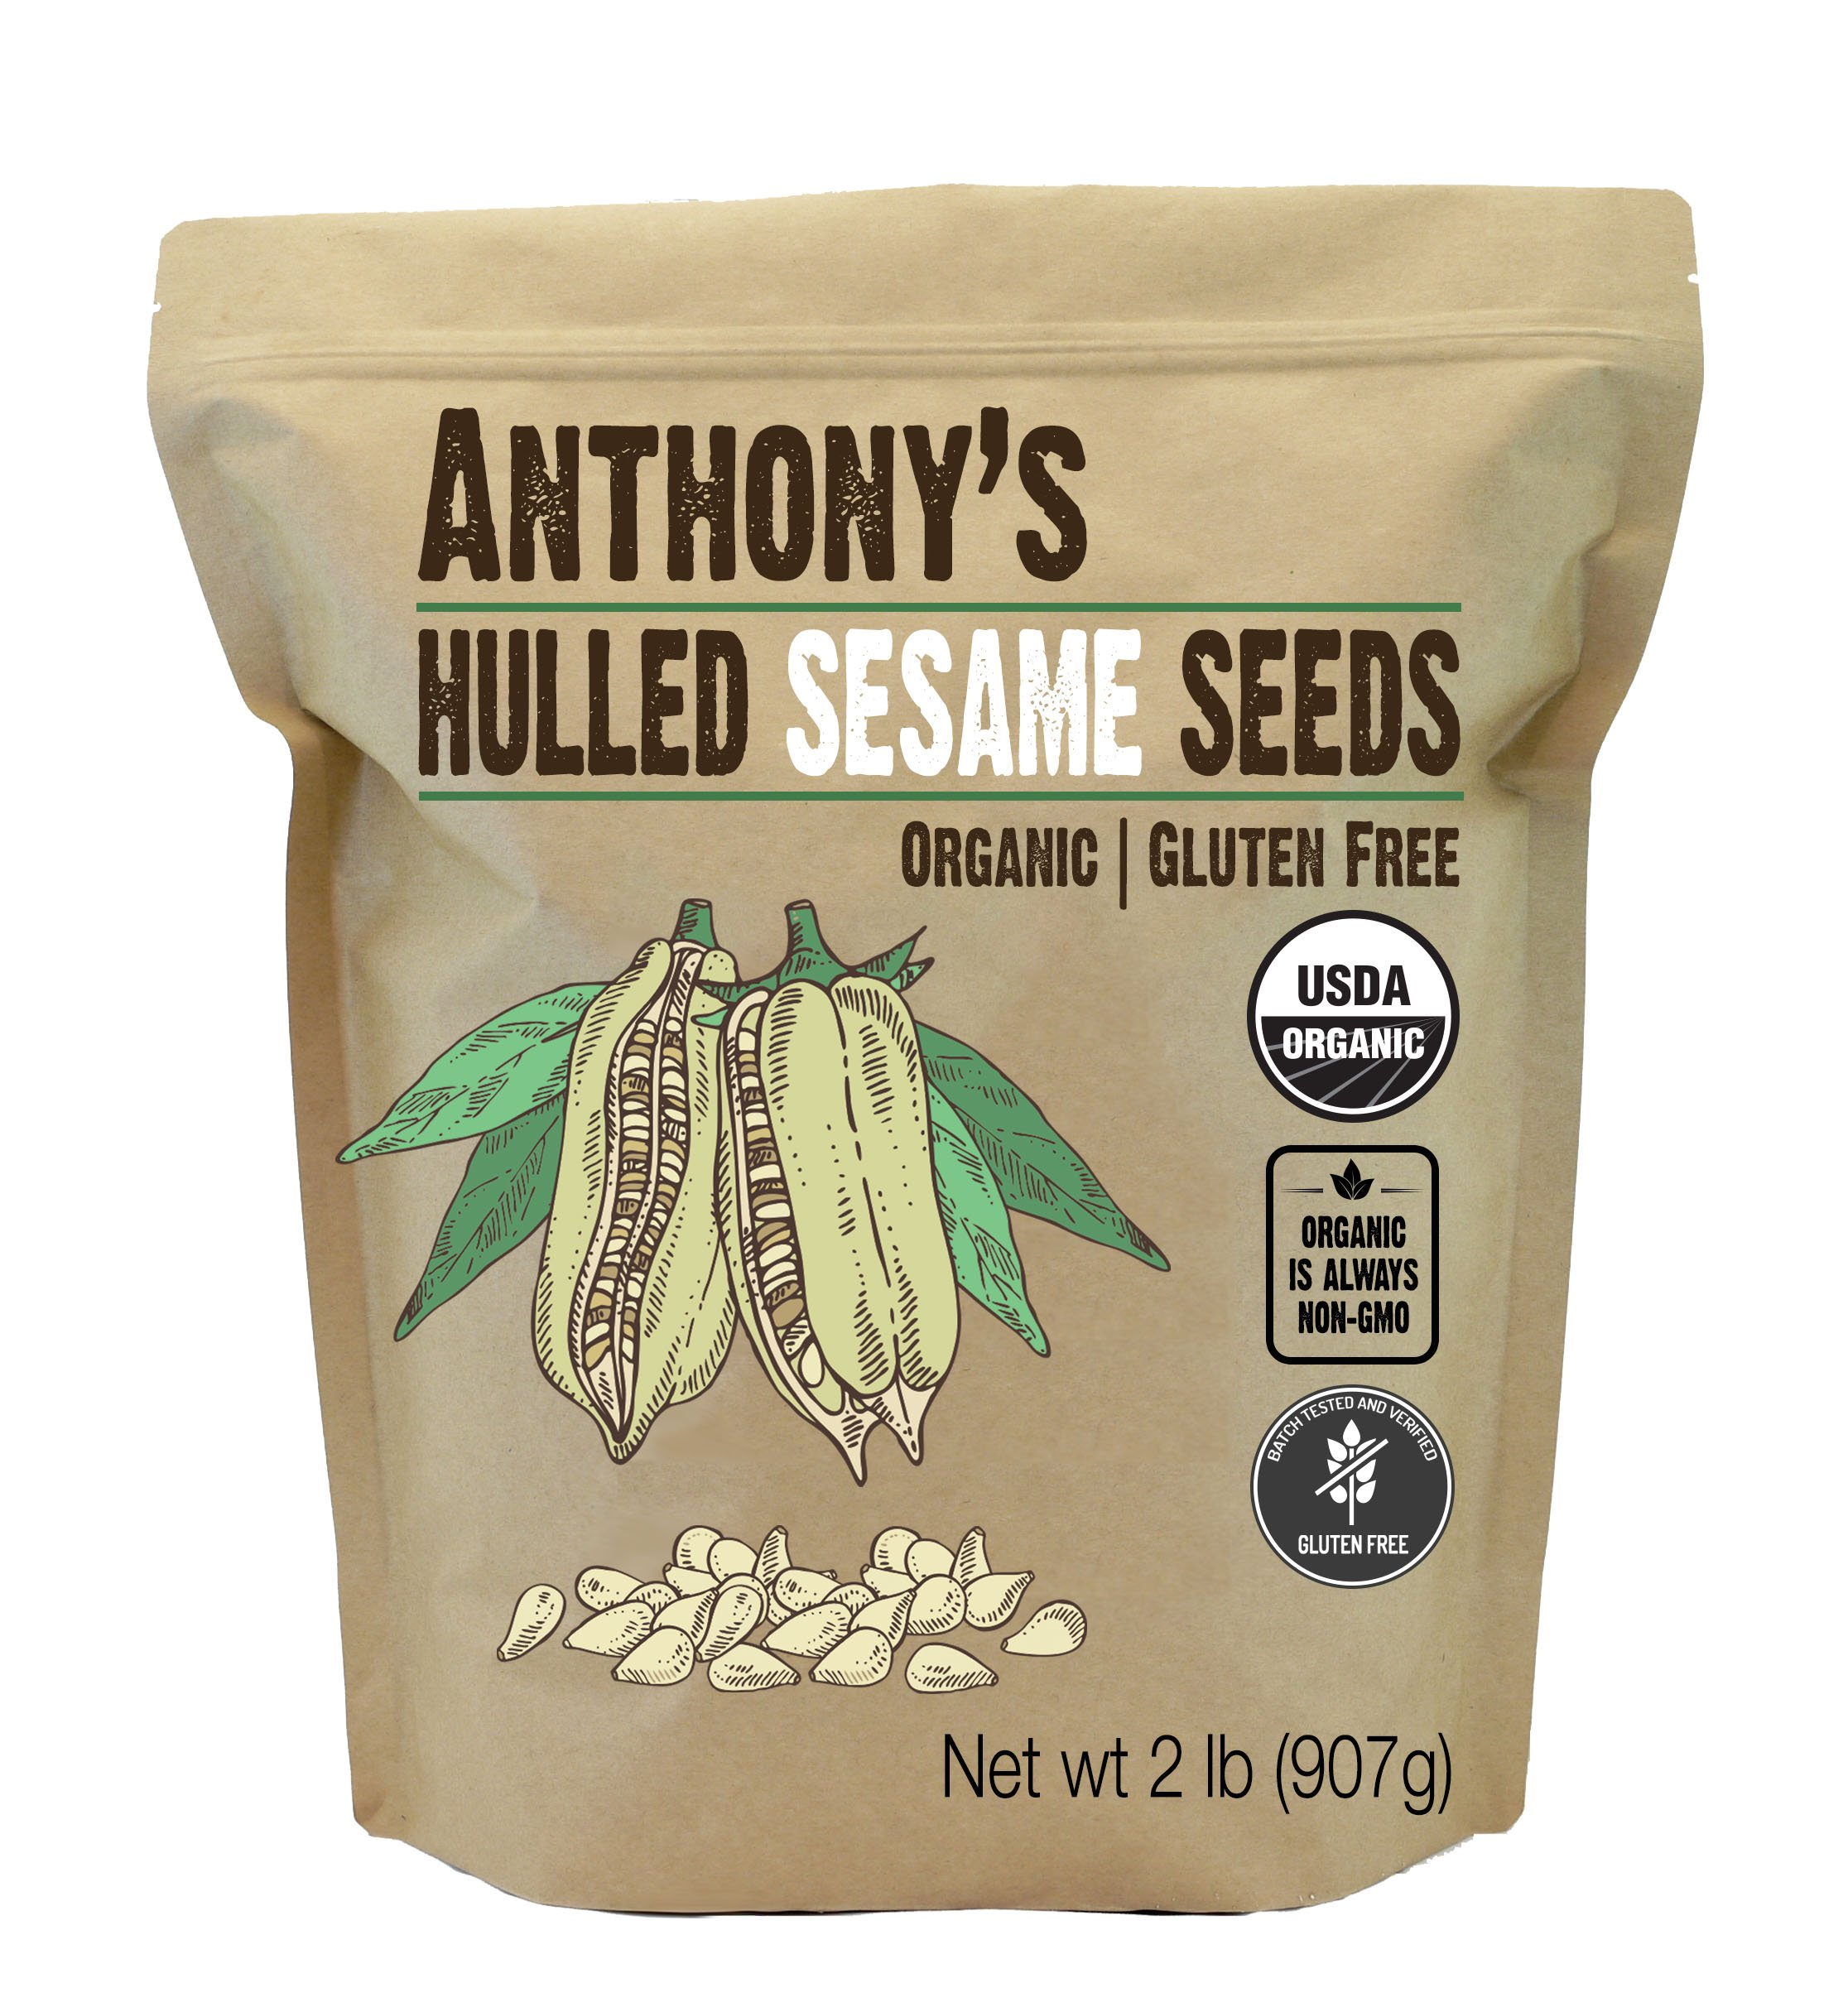 Anthony's Organic Hulled Sesame Seeds (White) (2lb), Gluten Free, Non-GMO